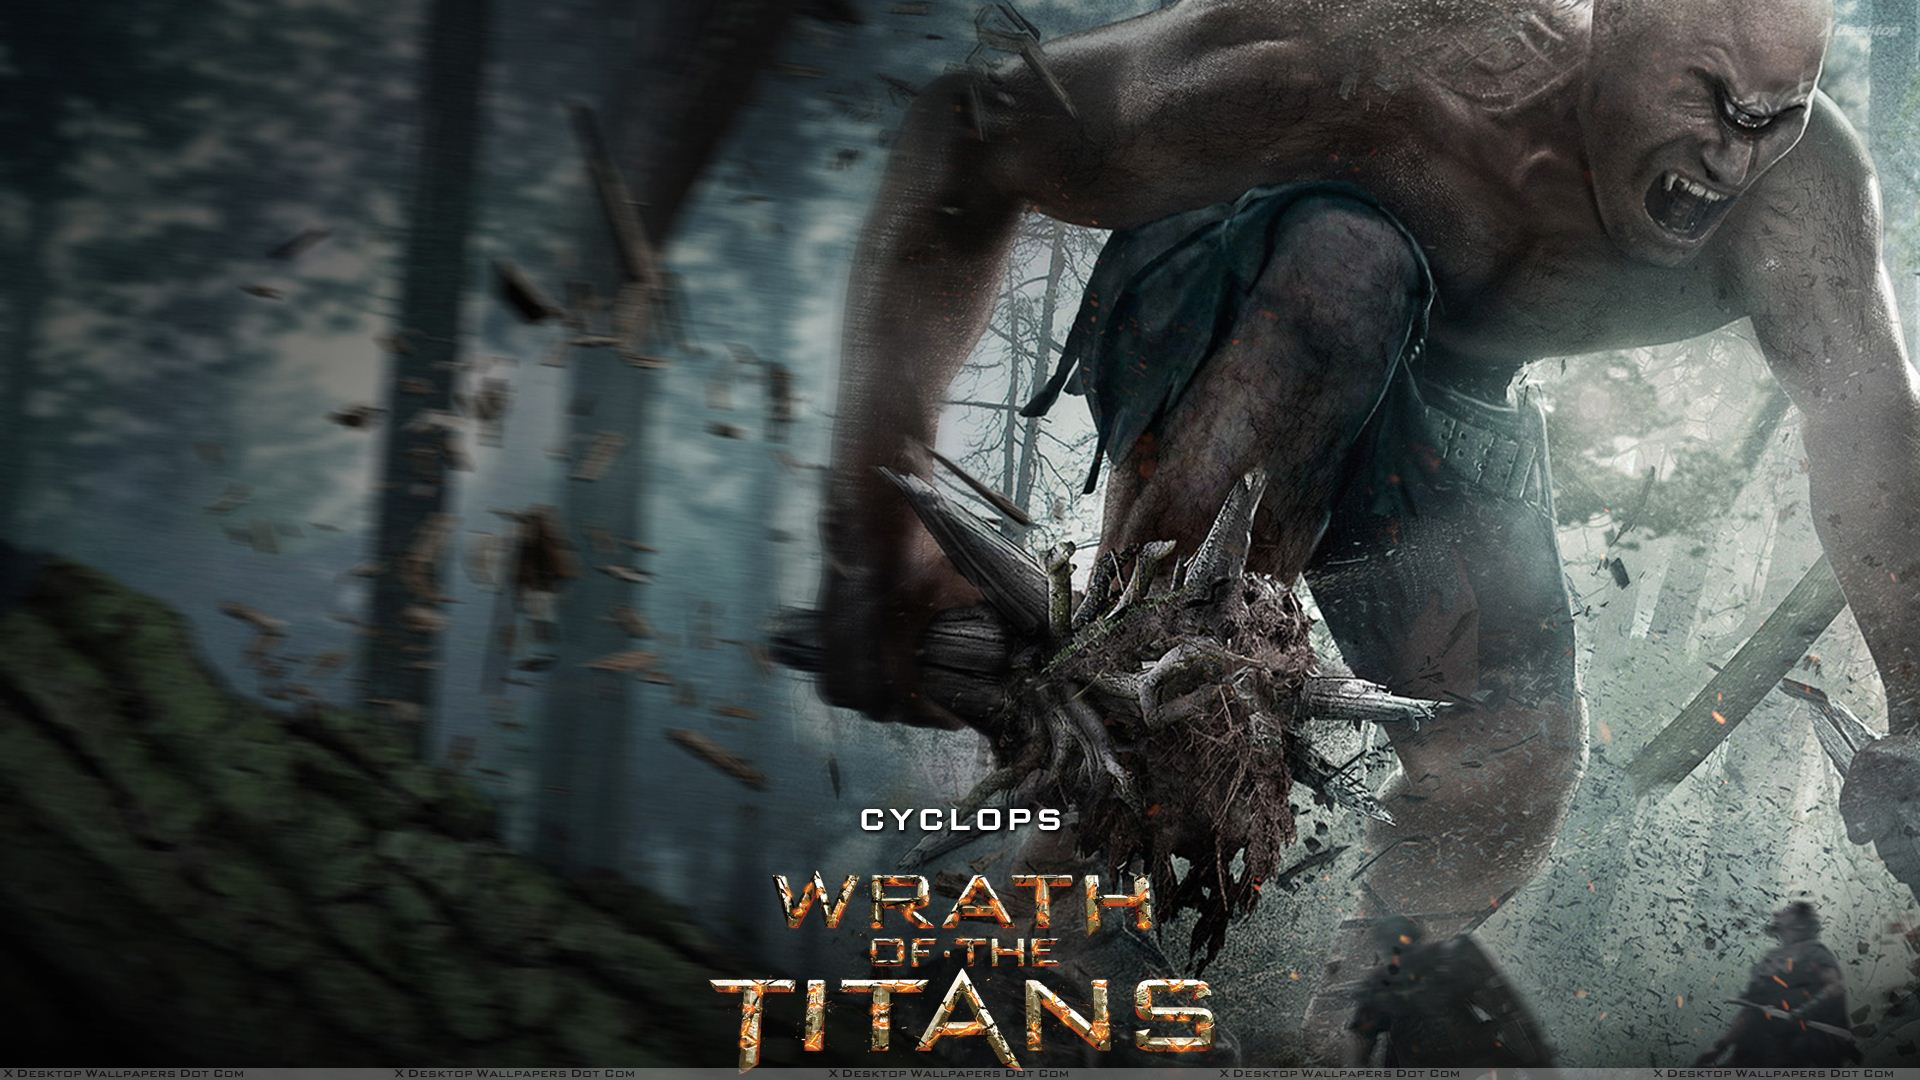 Wrath Of The Titans Martin Bayfield As Cyclops Screaming Wallpaper